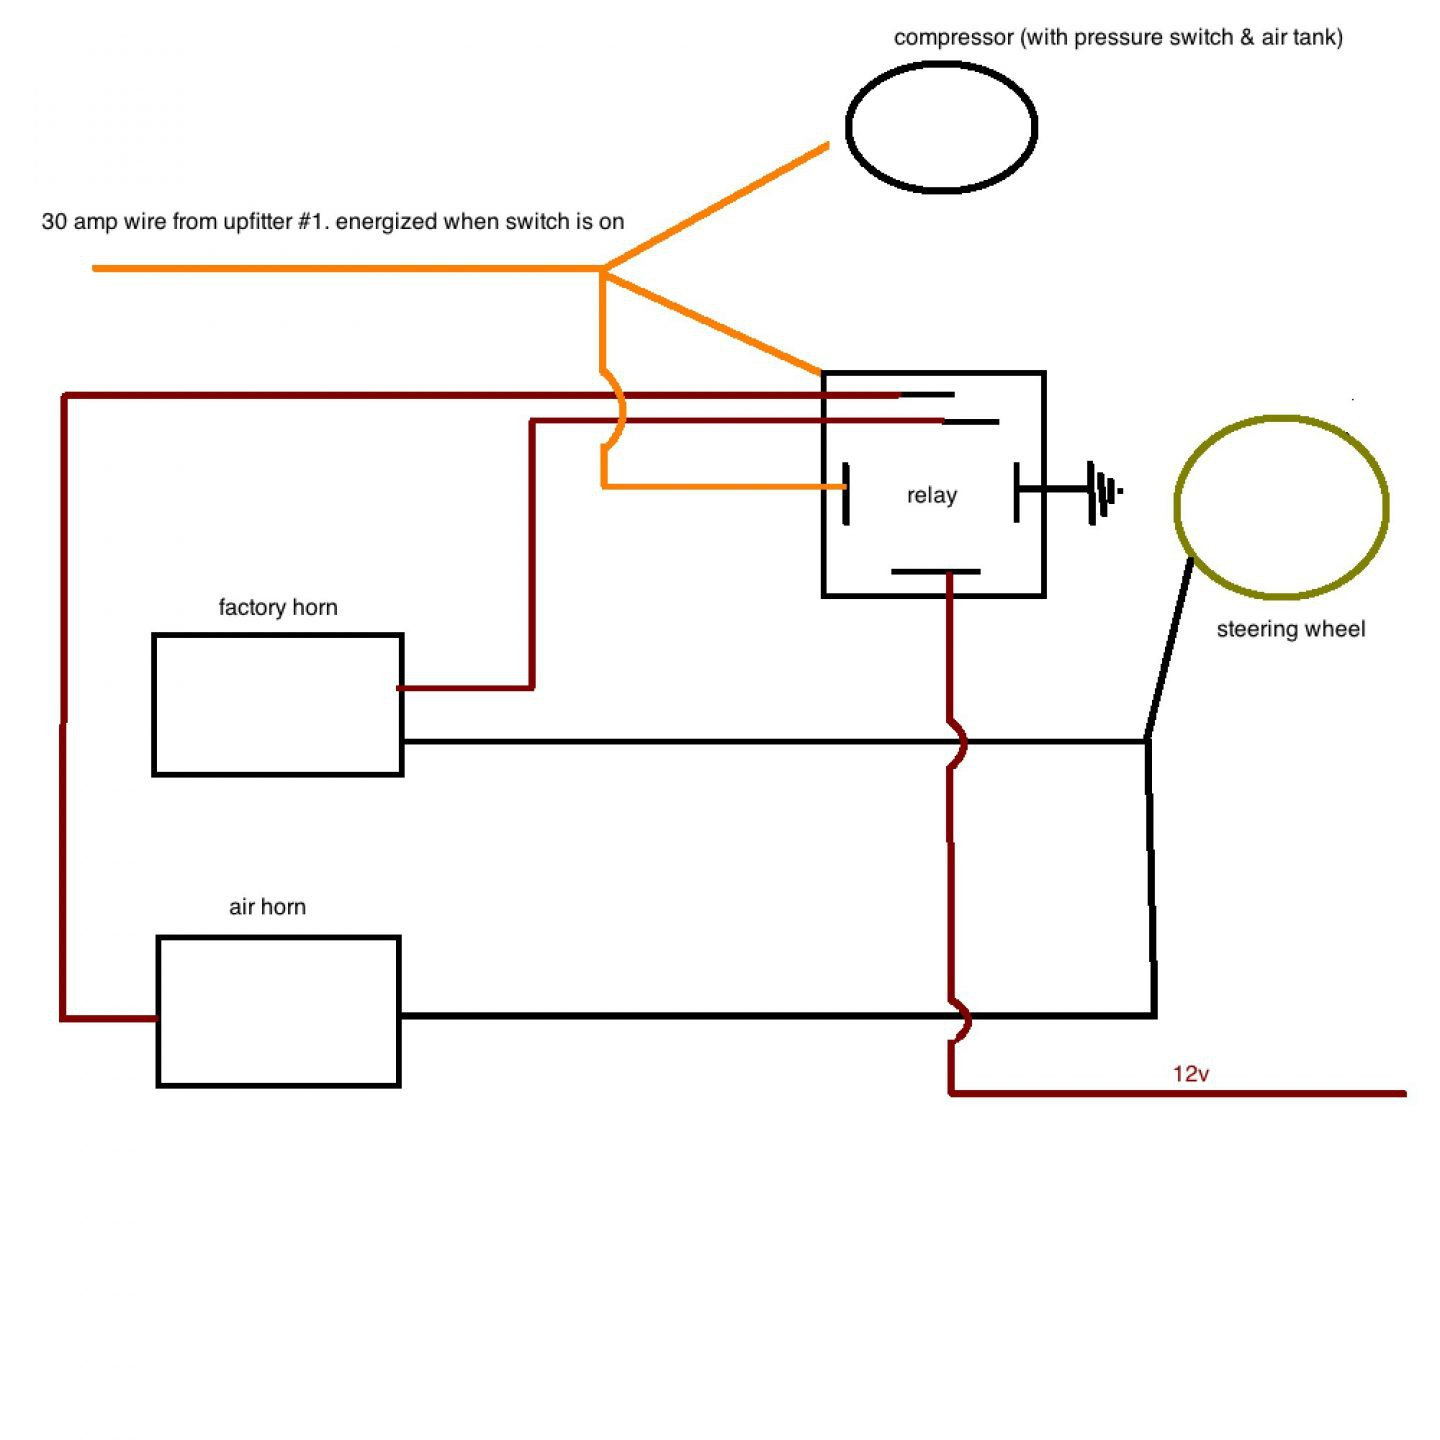 current sensing relay wiring diagram Download-air horn wiring diagram Collection Air Horn Wiring Diagram Best Air Horn Wiring Diagram Hella 7-q